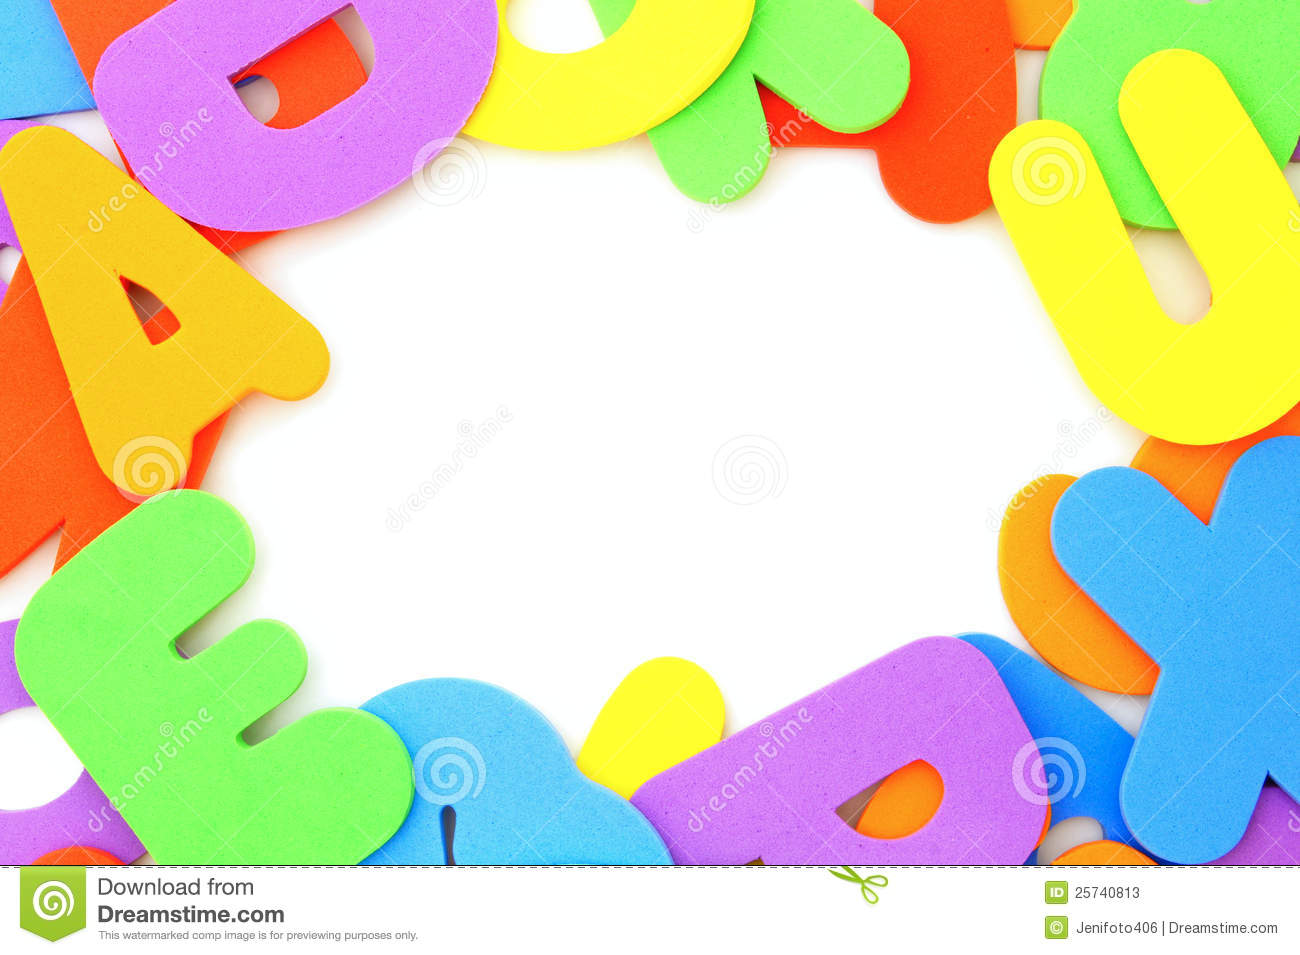 Colorful letter frame stock image. Image of childhood - 25740813